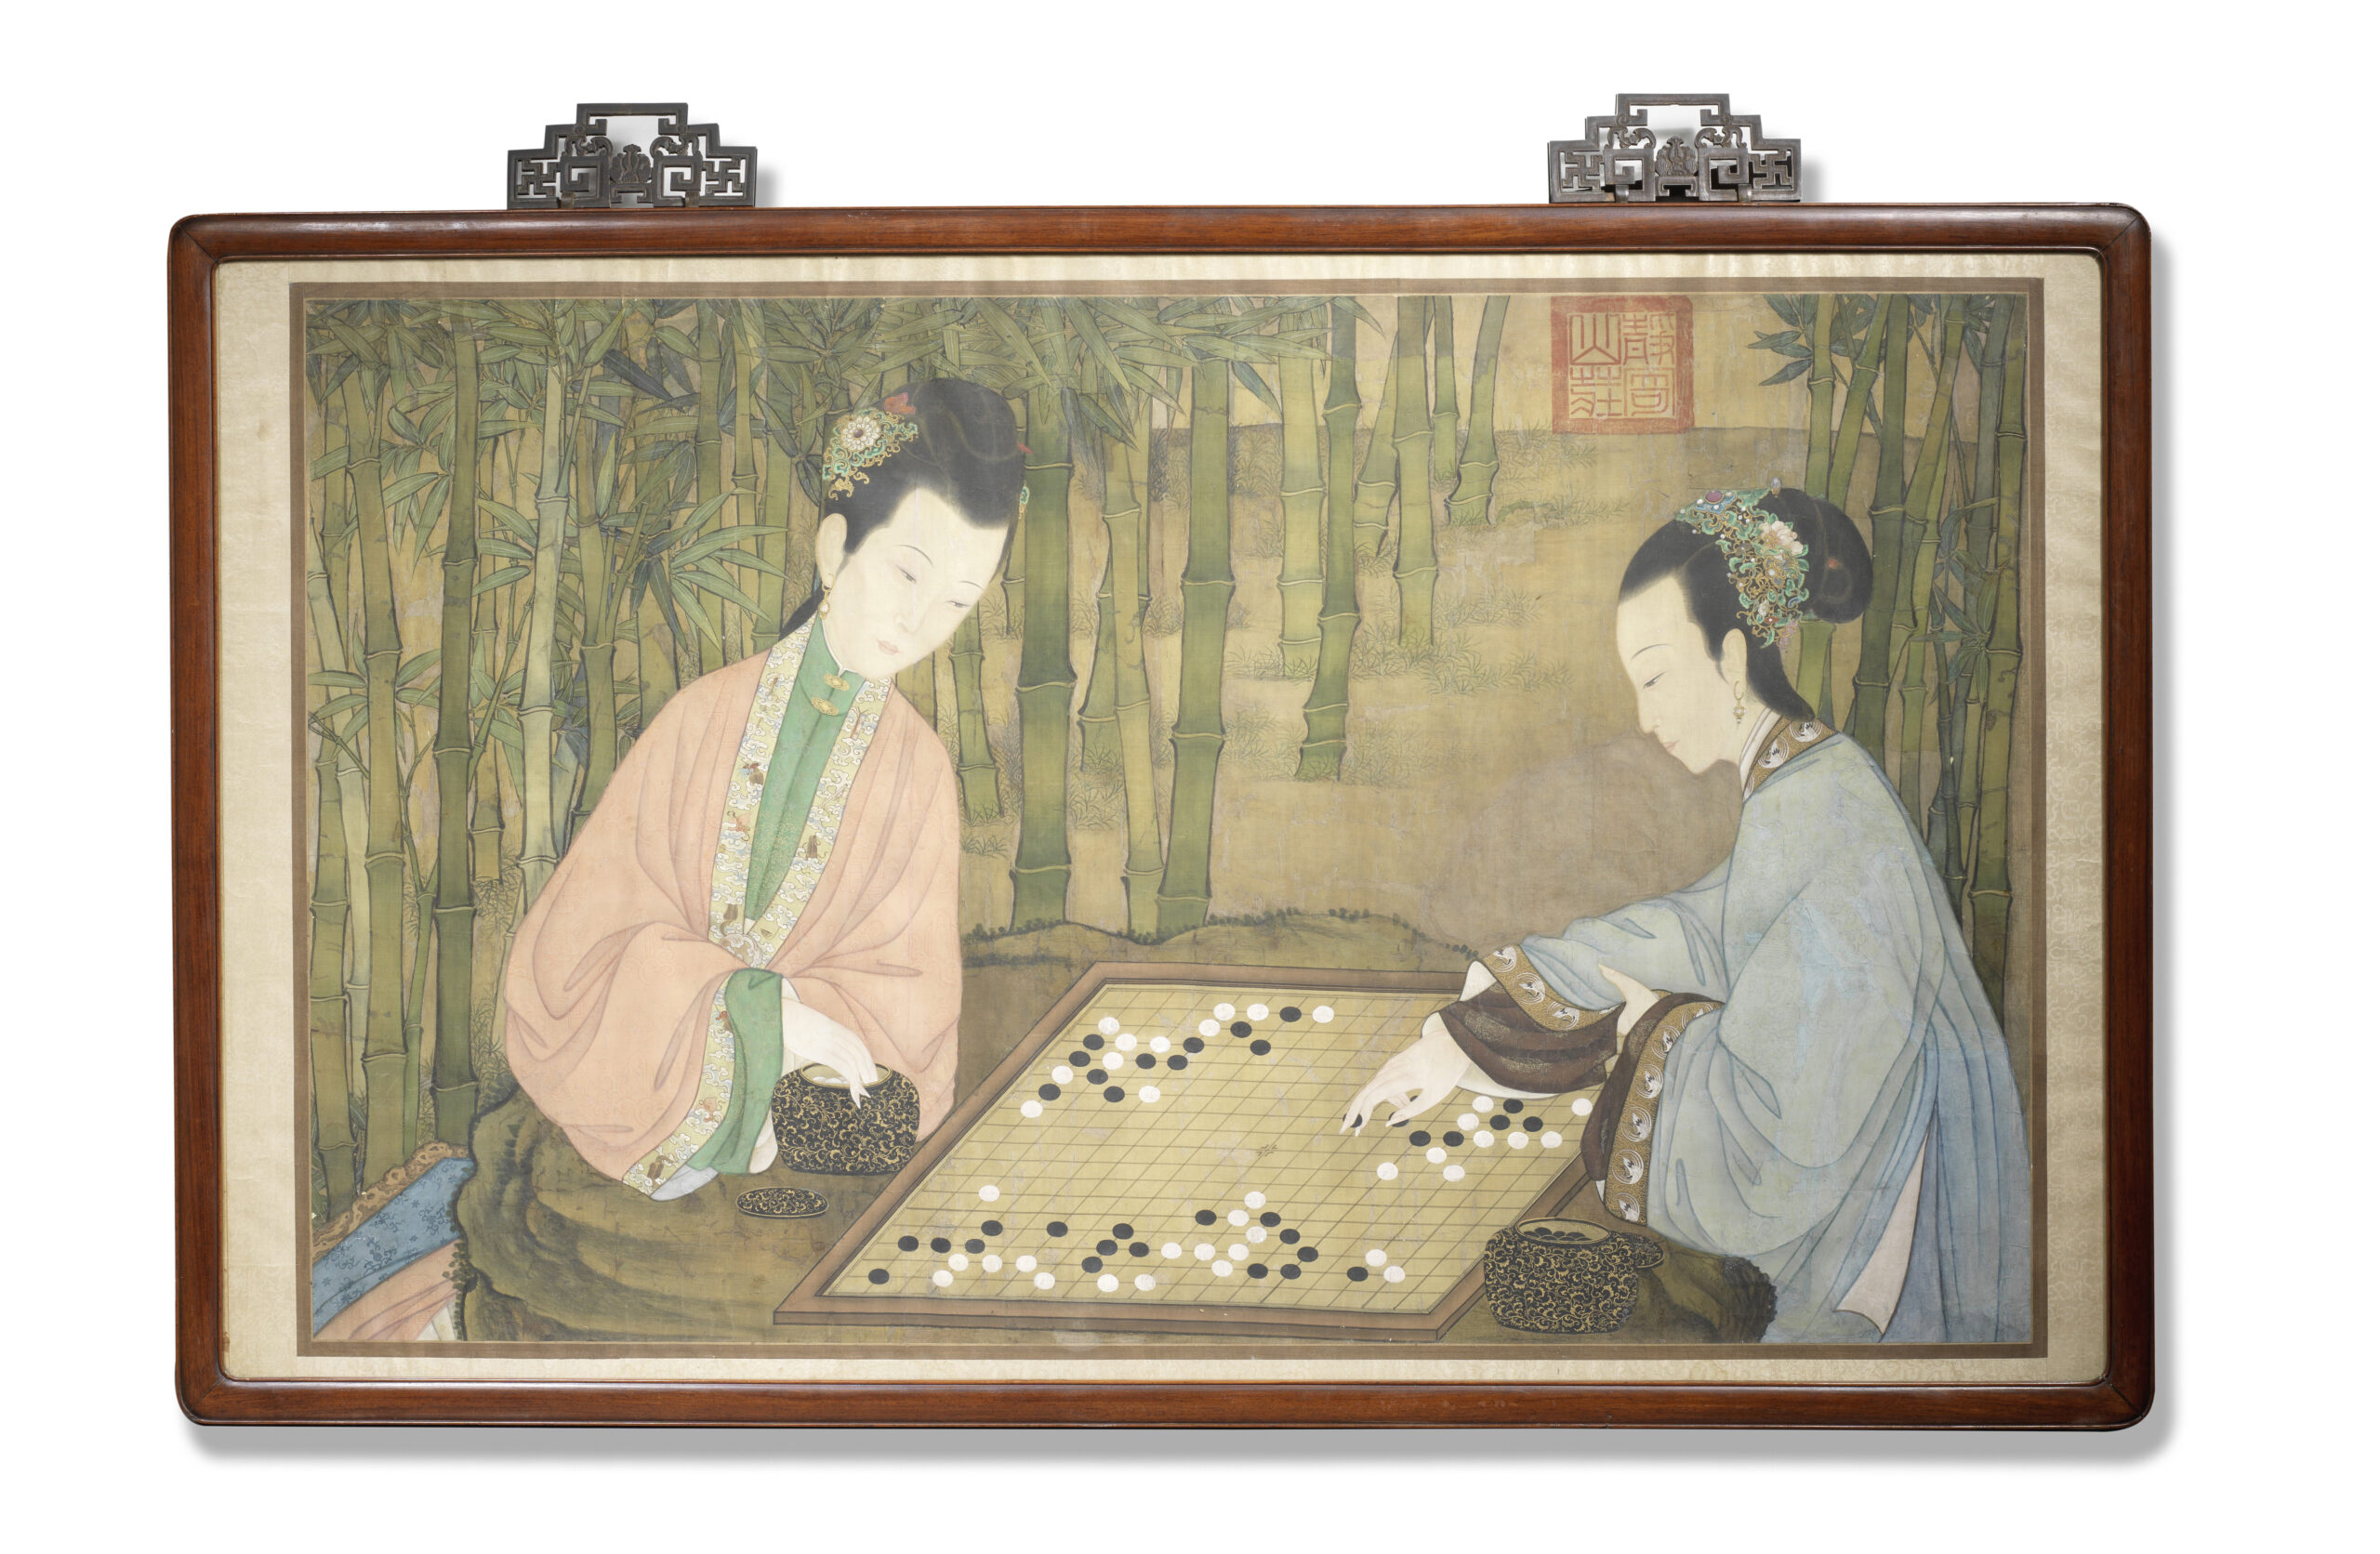 BONHAMS A Large Court Painting of Ladies Playing Chess, 18th century, Including the frame: 155cm (61in) wide x 99cm (39in) high.